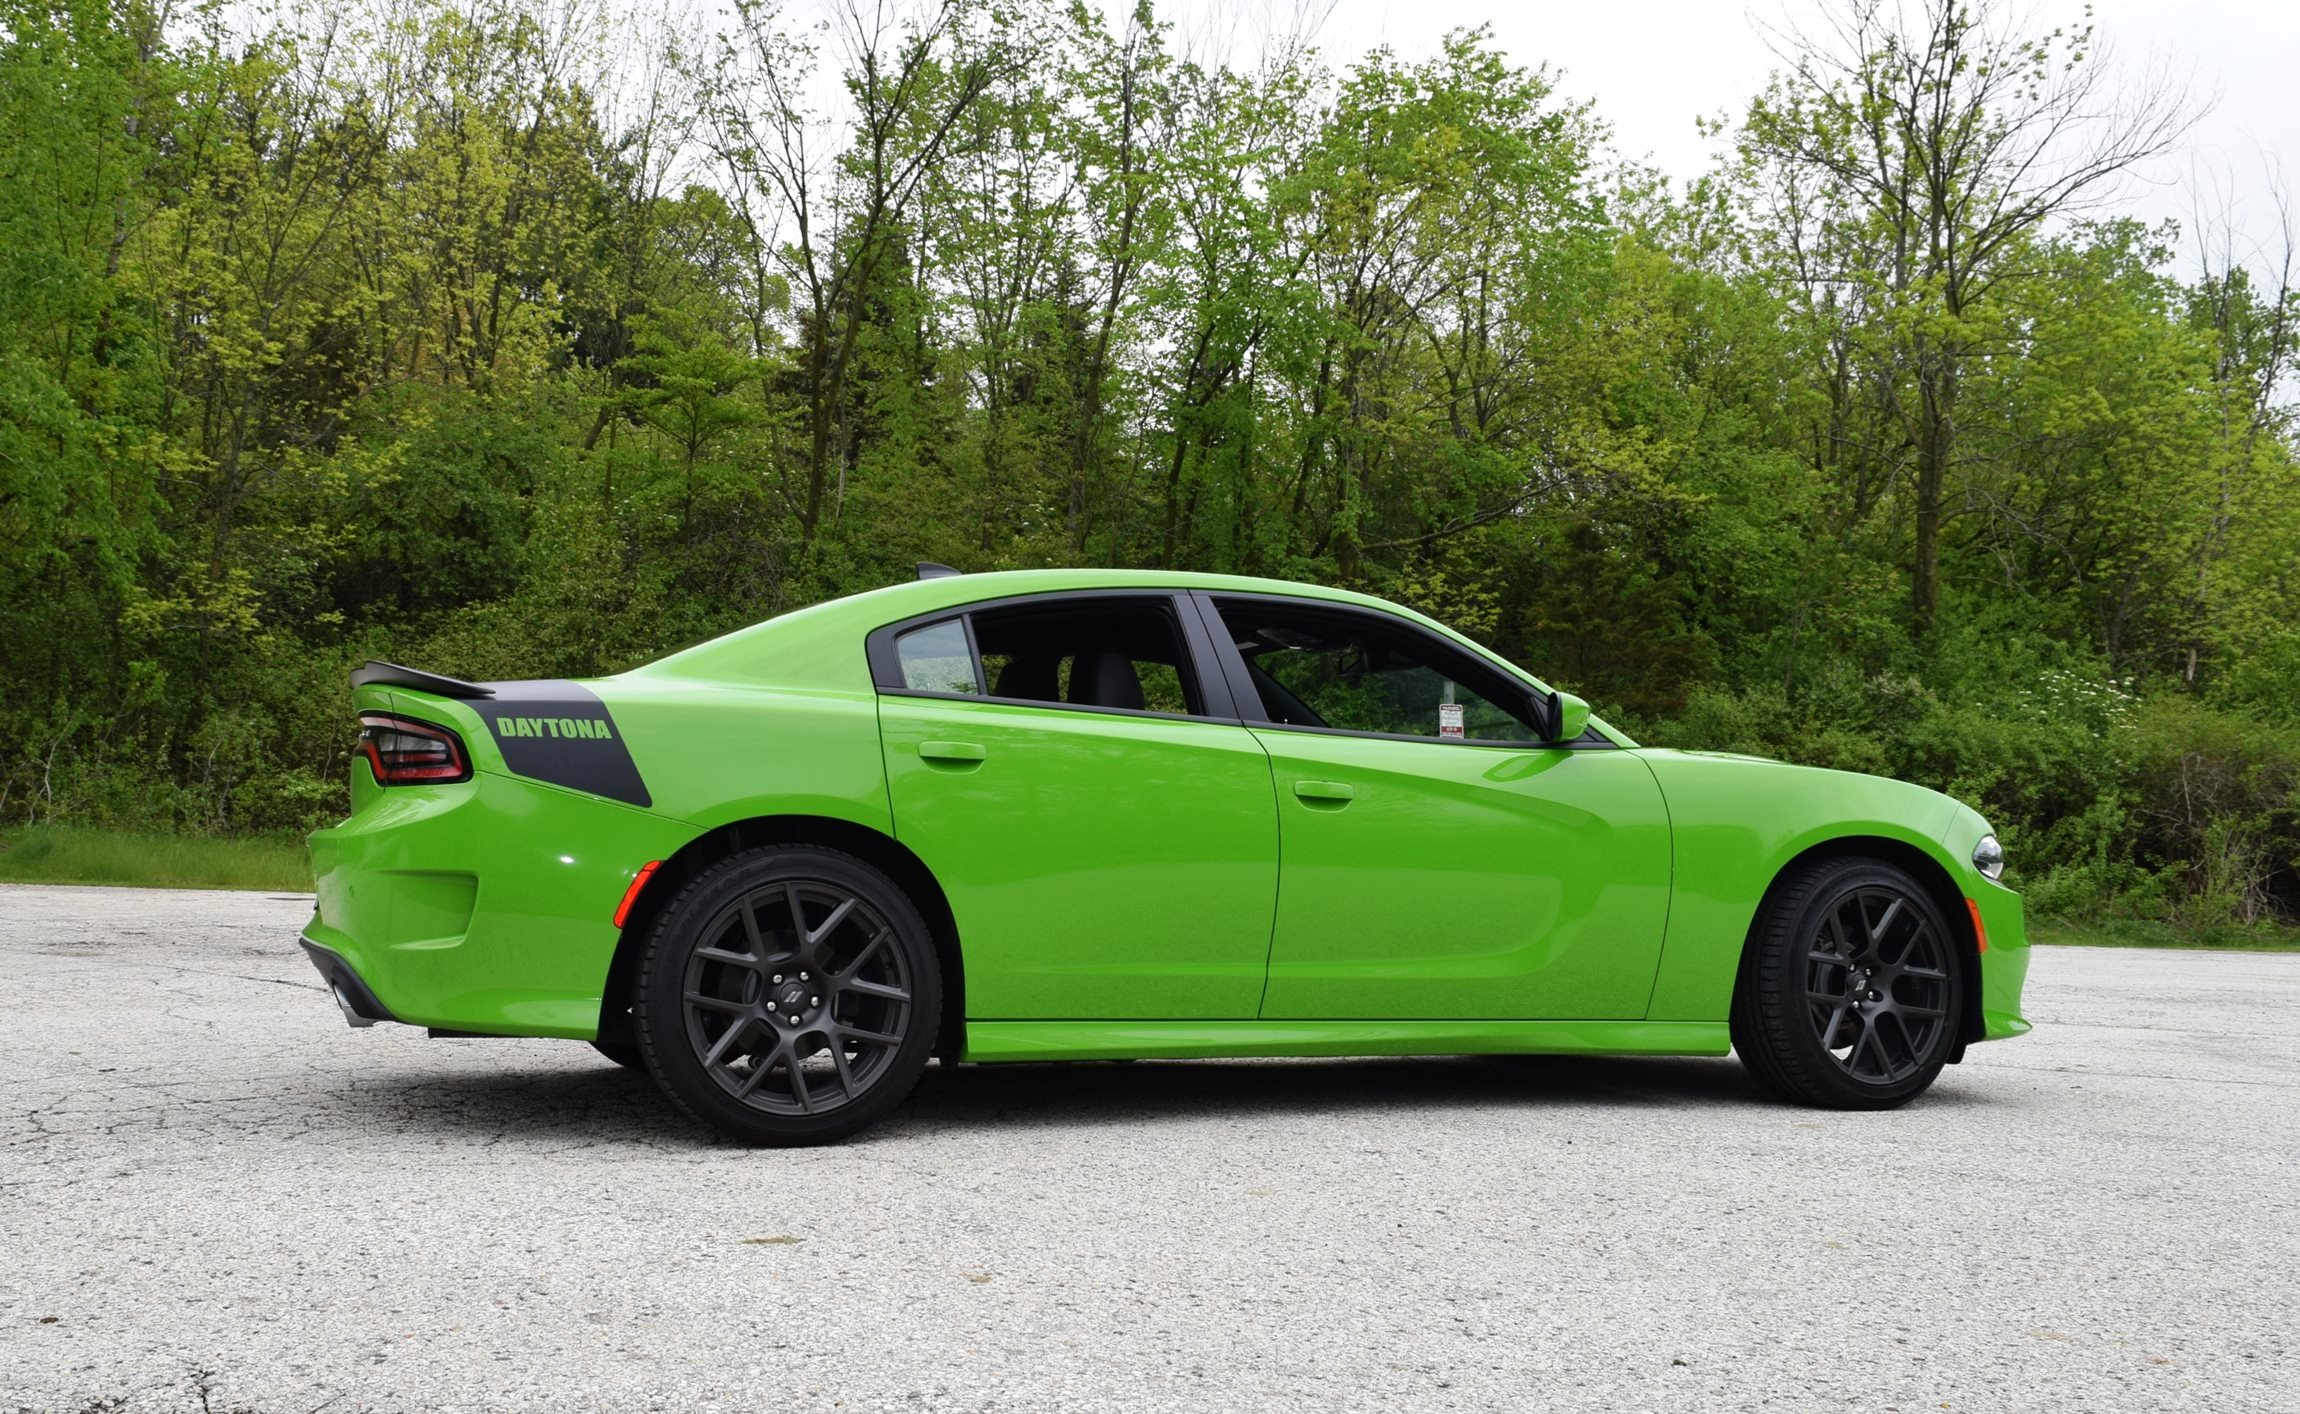 2017 Dodge Charger DAYTONA 14